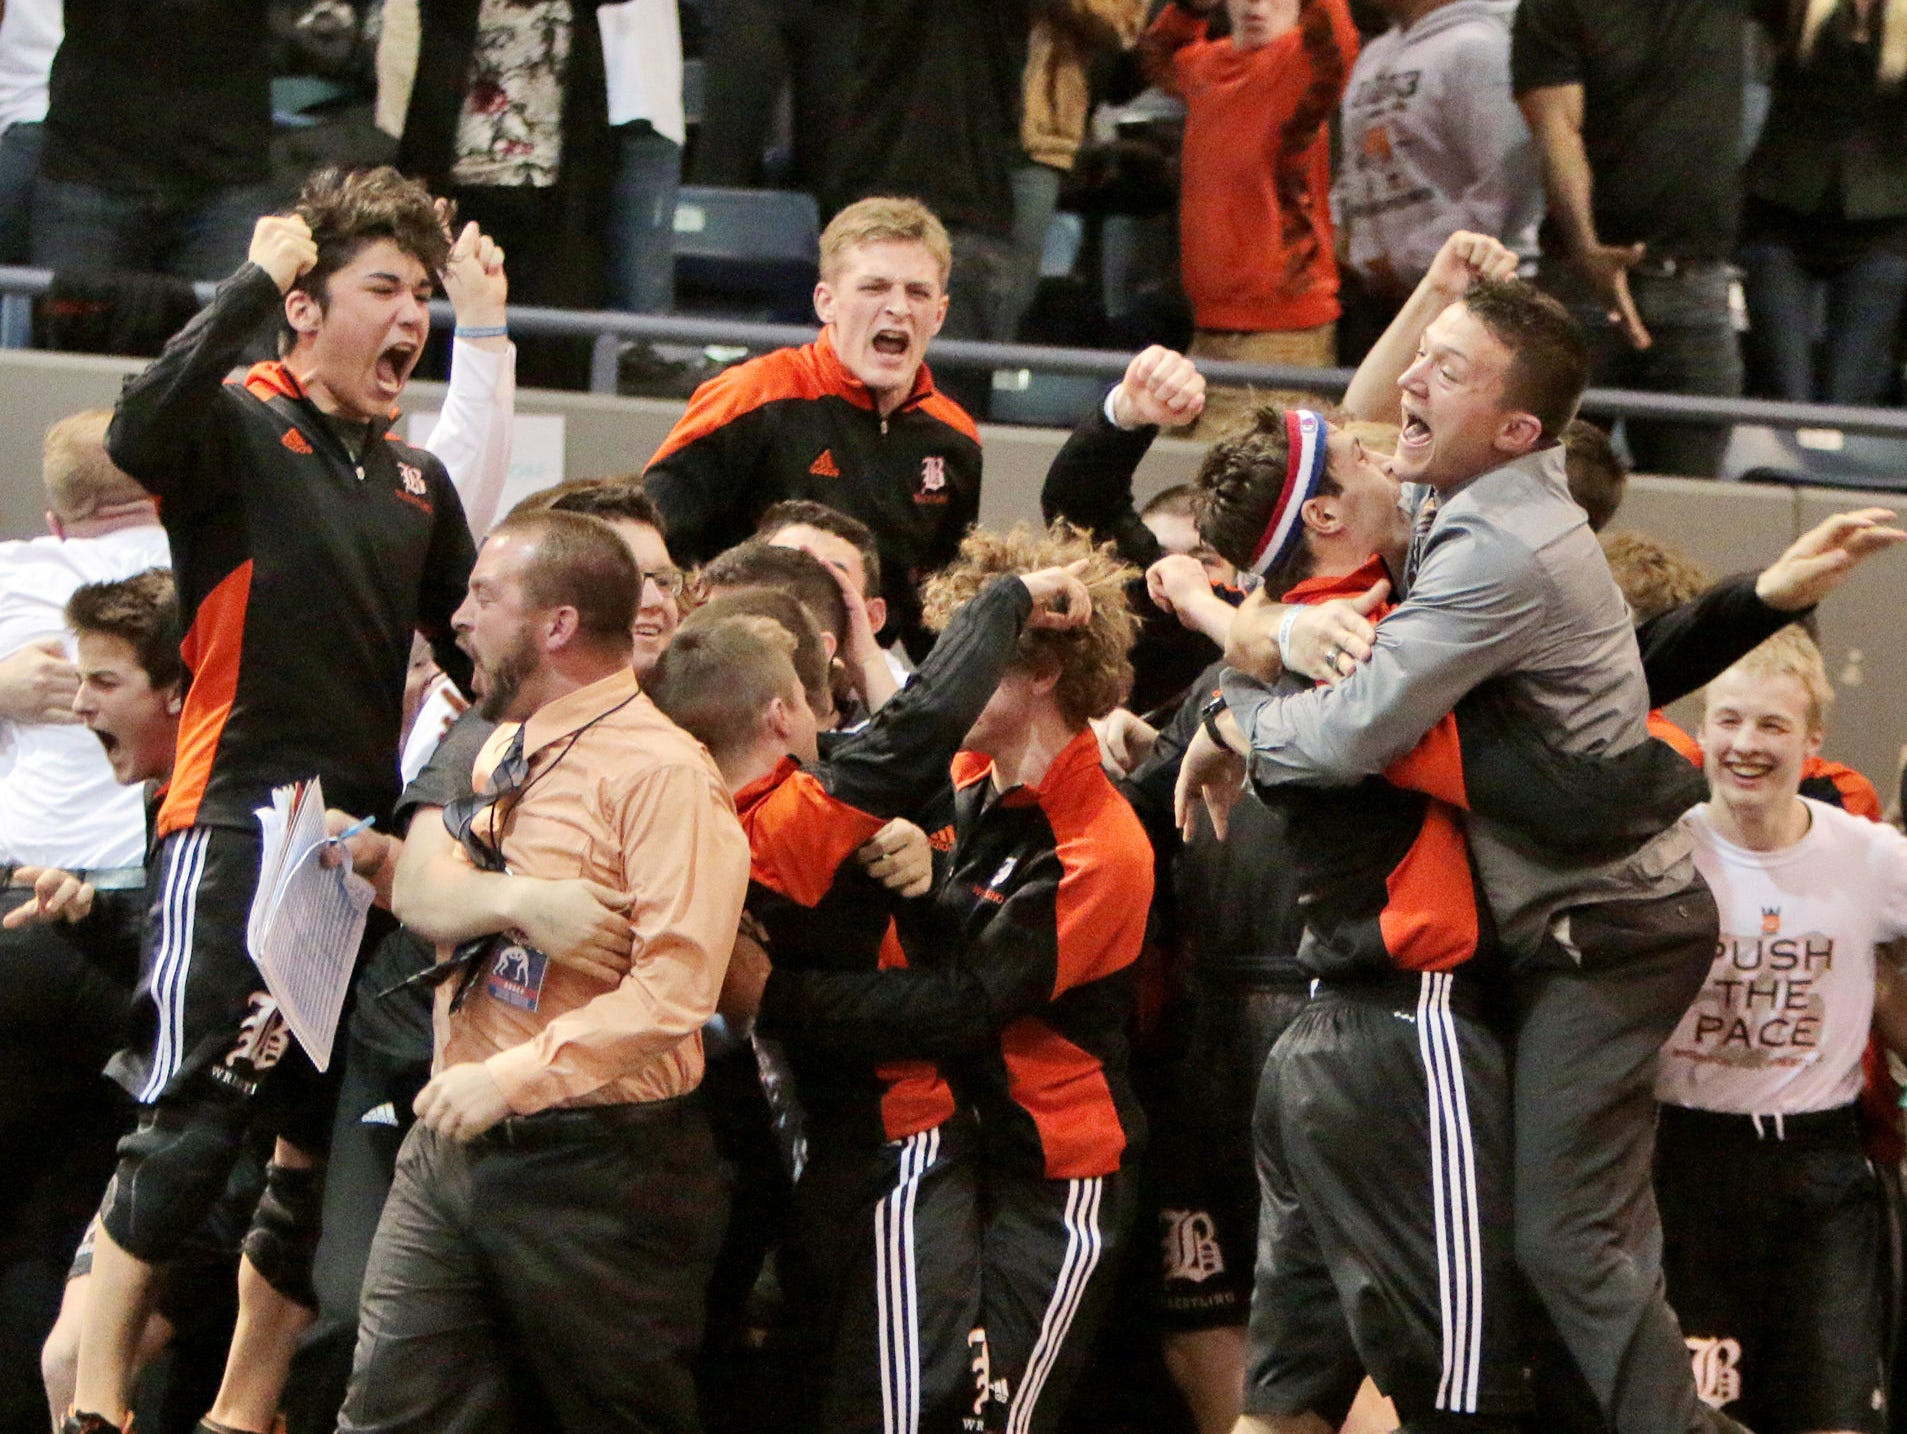 Brighton coaches and players celebrate after they won the first state title in program history.